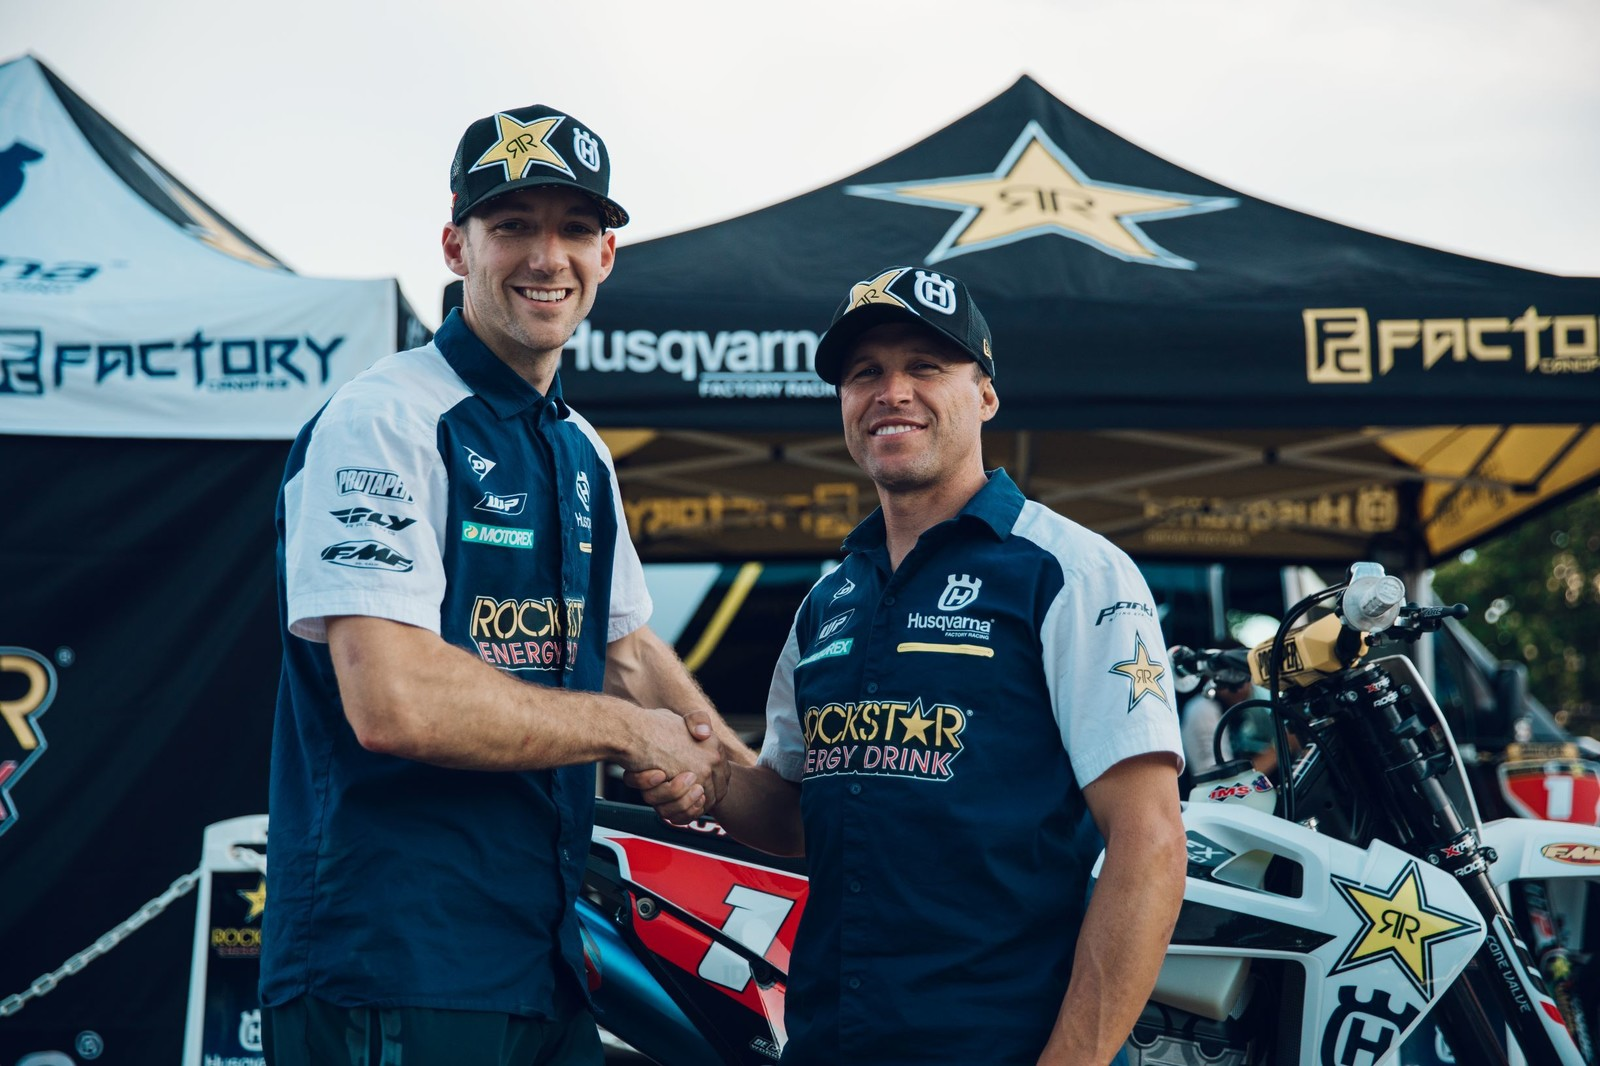 Rockstar Energy Husqvarna Extends Contract with Colton Haaker